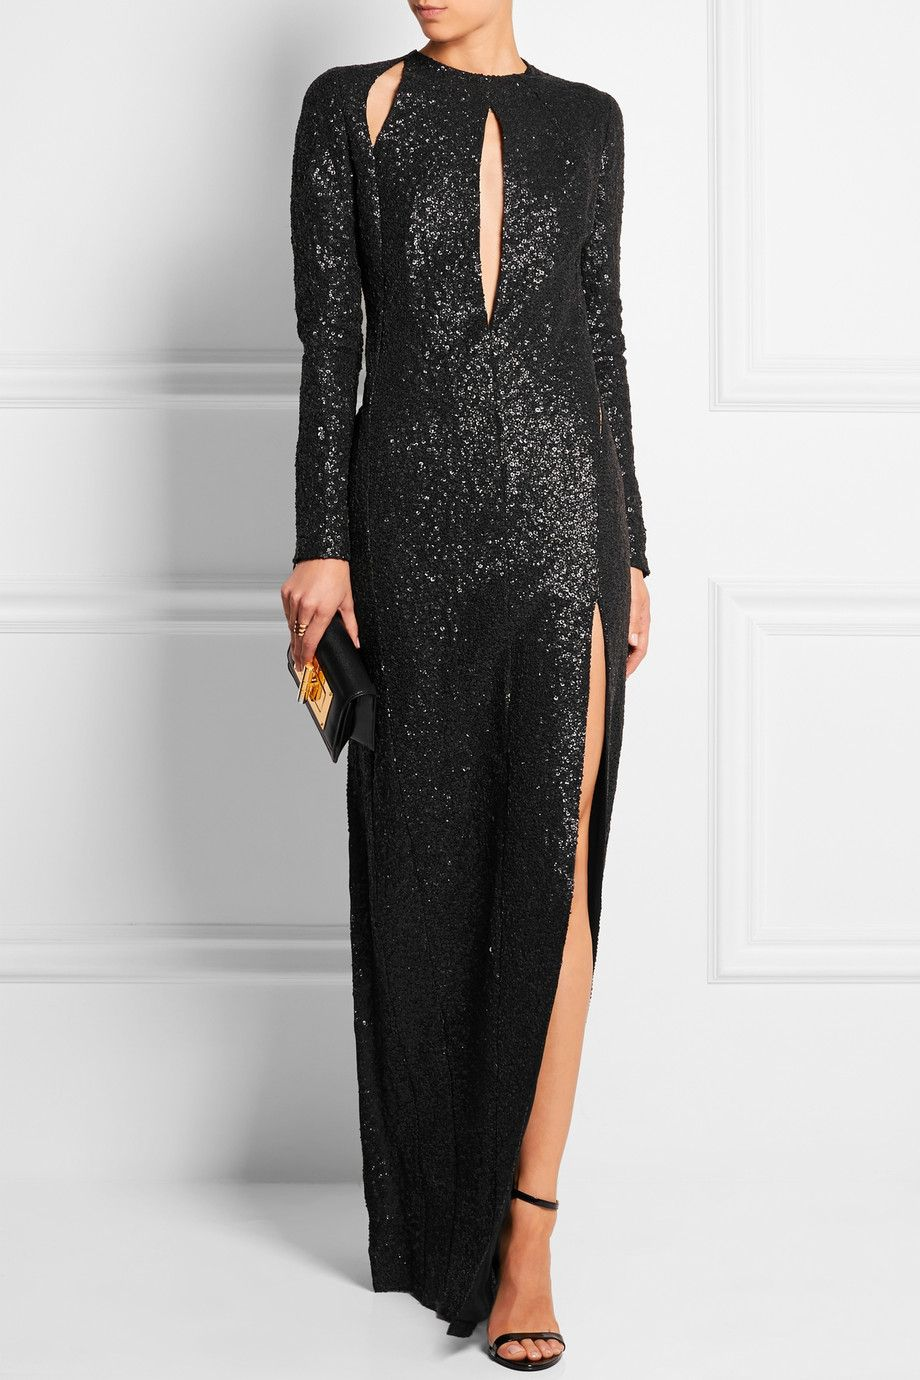 Factory Outlet For Sale backless sequinned dress - Black Tom Ford Low Shipping Cheap Price Cheap Original Good Selling Online JFXAPK